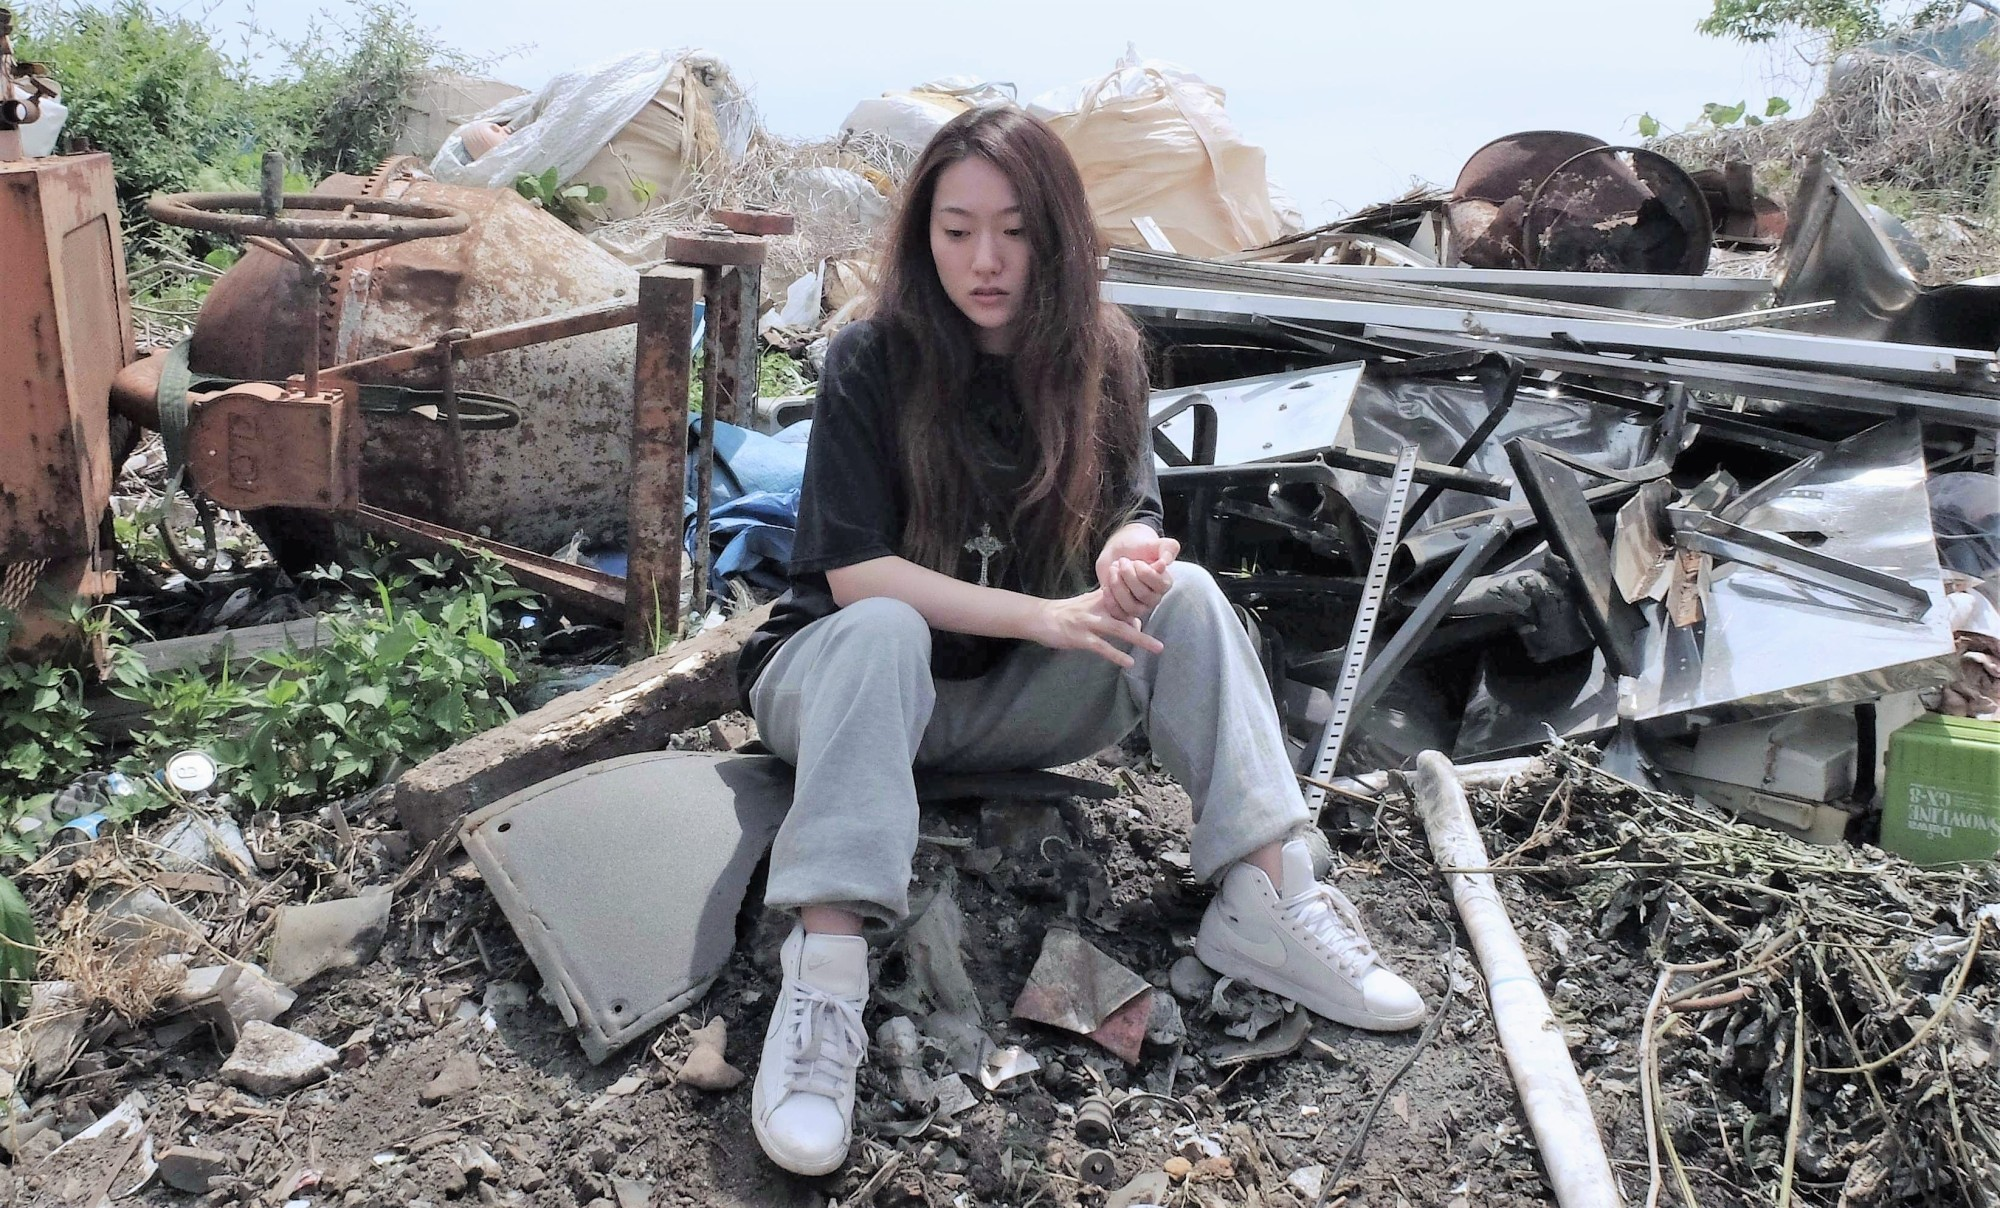 Lose yourself  in the music: Rapper Sakura (Hanae Kan) tackles her fears and anxieties in Daisuke Miyazaki's realistic drama 'Yamato (California).' | © DEEP END PICTURES INC.